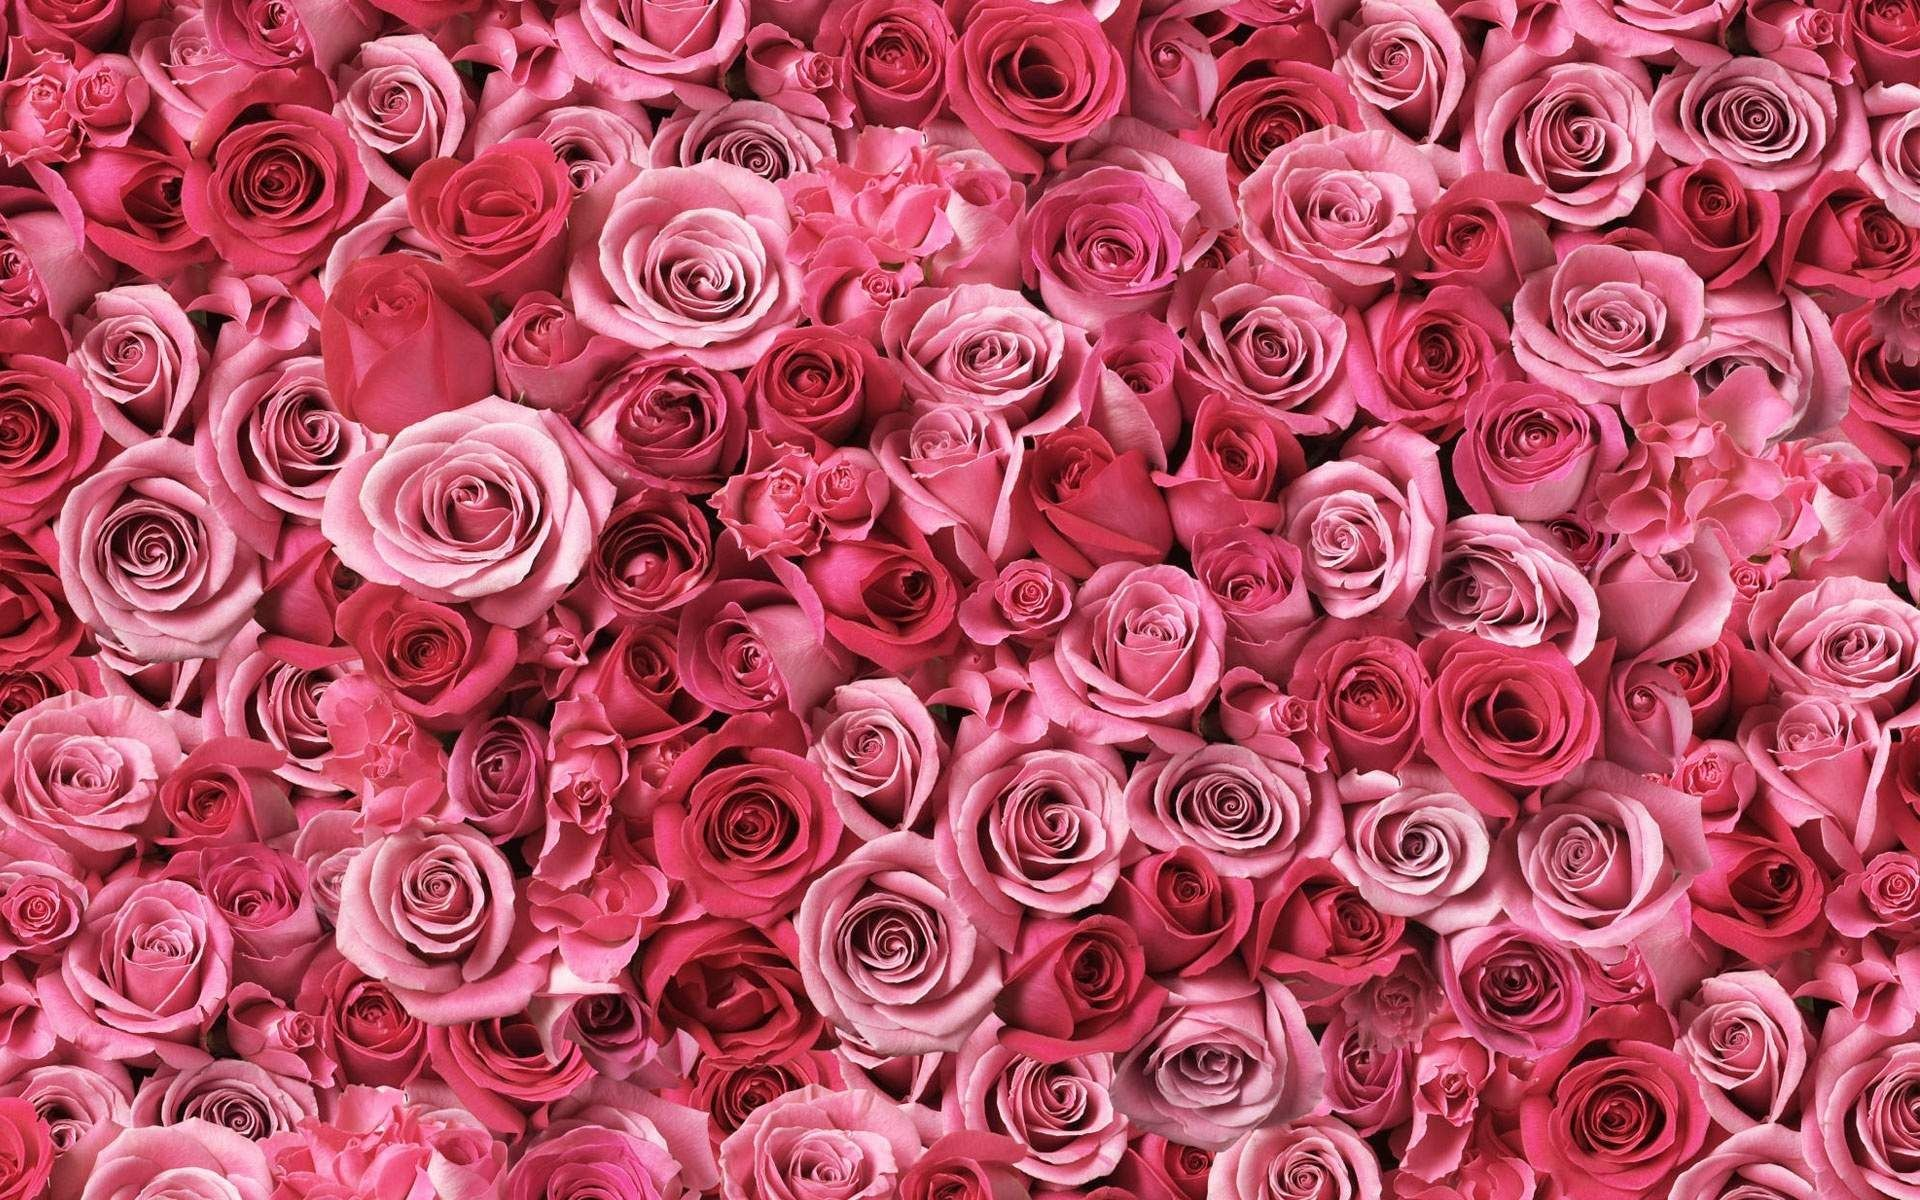 Res: 1920x1200, Flowers, Wallpapers, Pink, Rose, Flower, Countless, Wallpapers381 Wallpaper